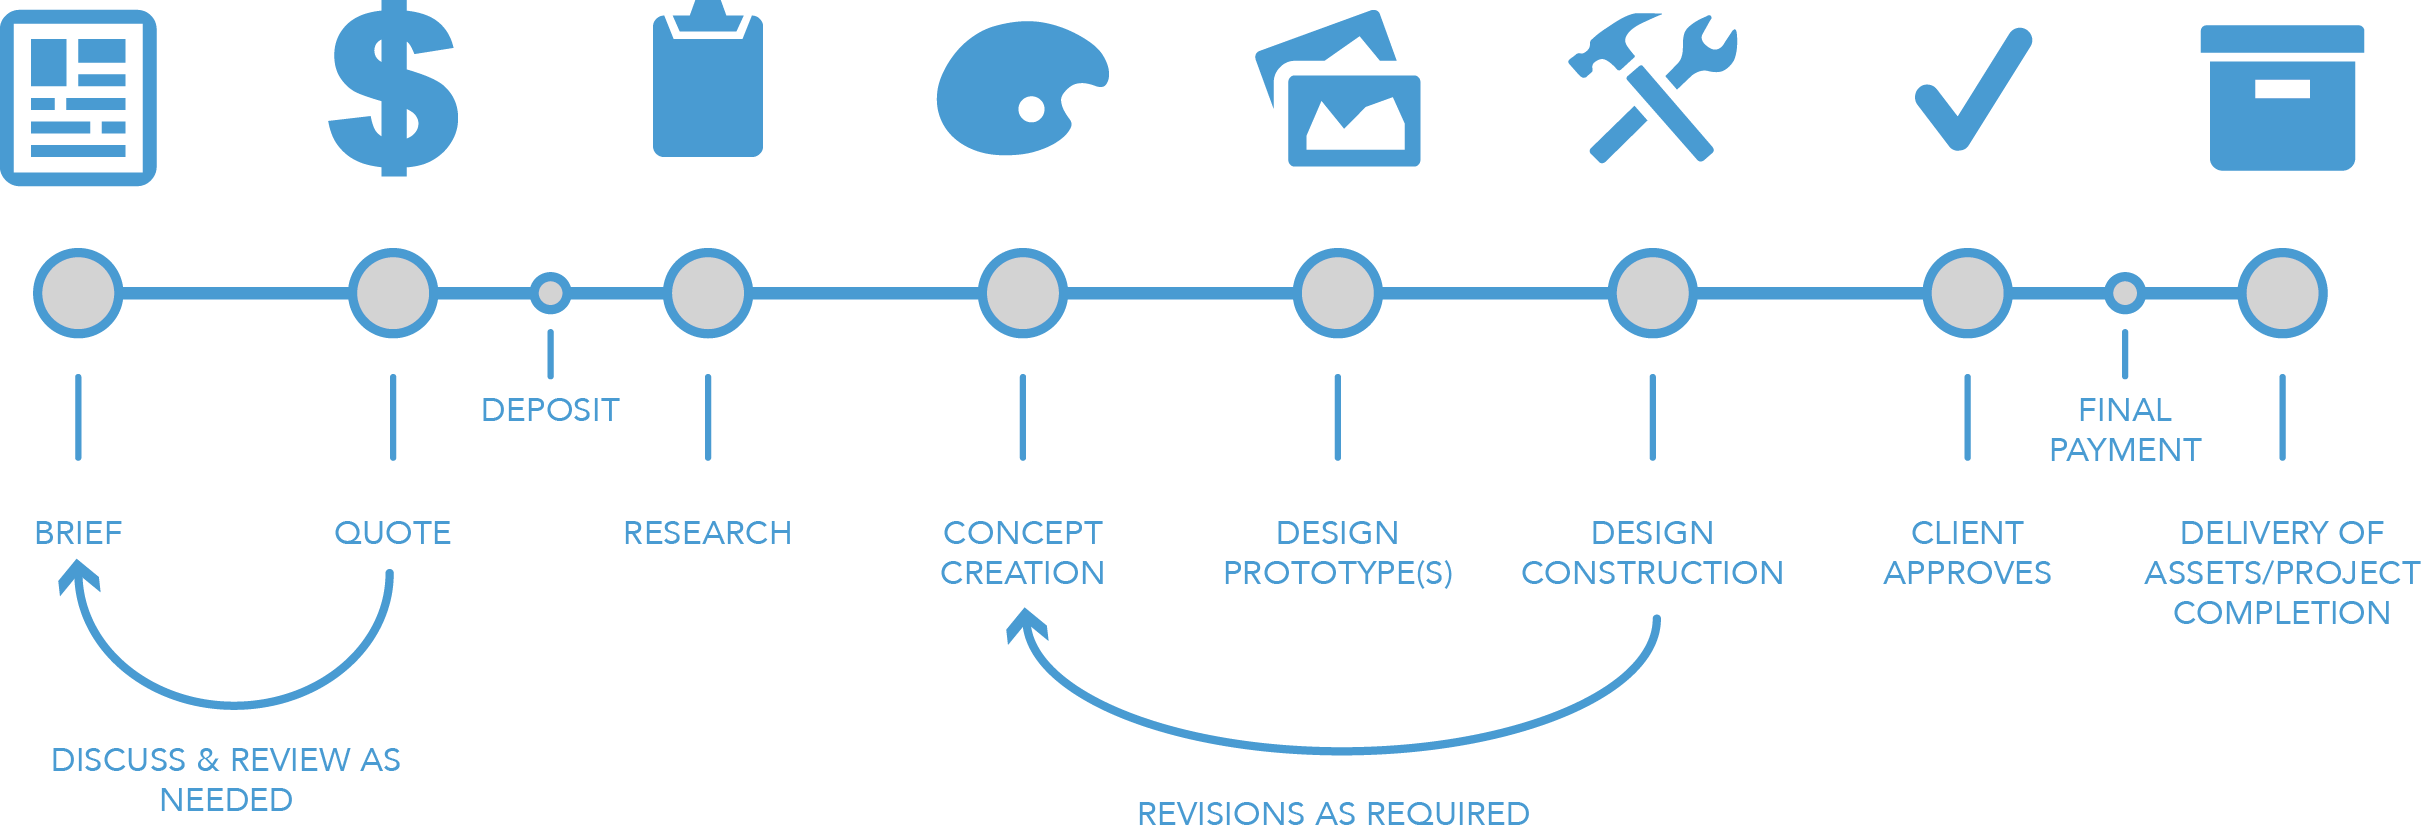 CTR Services Design Process Infographic